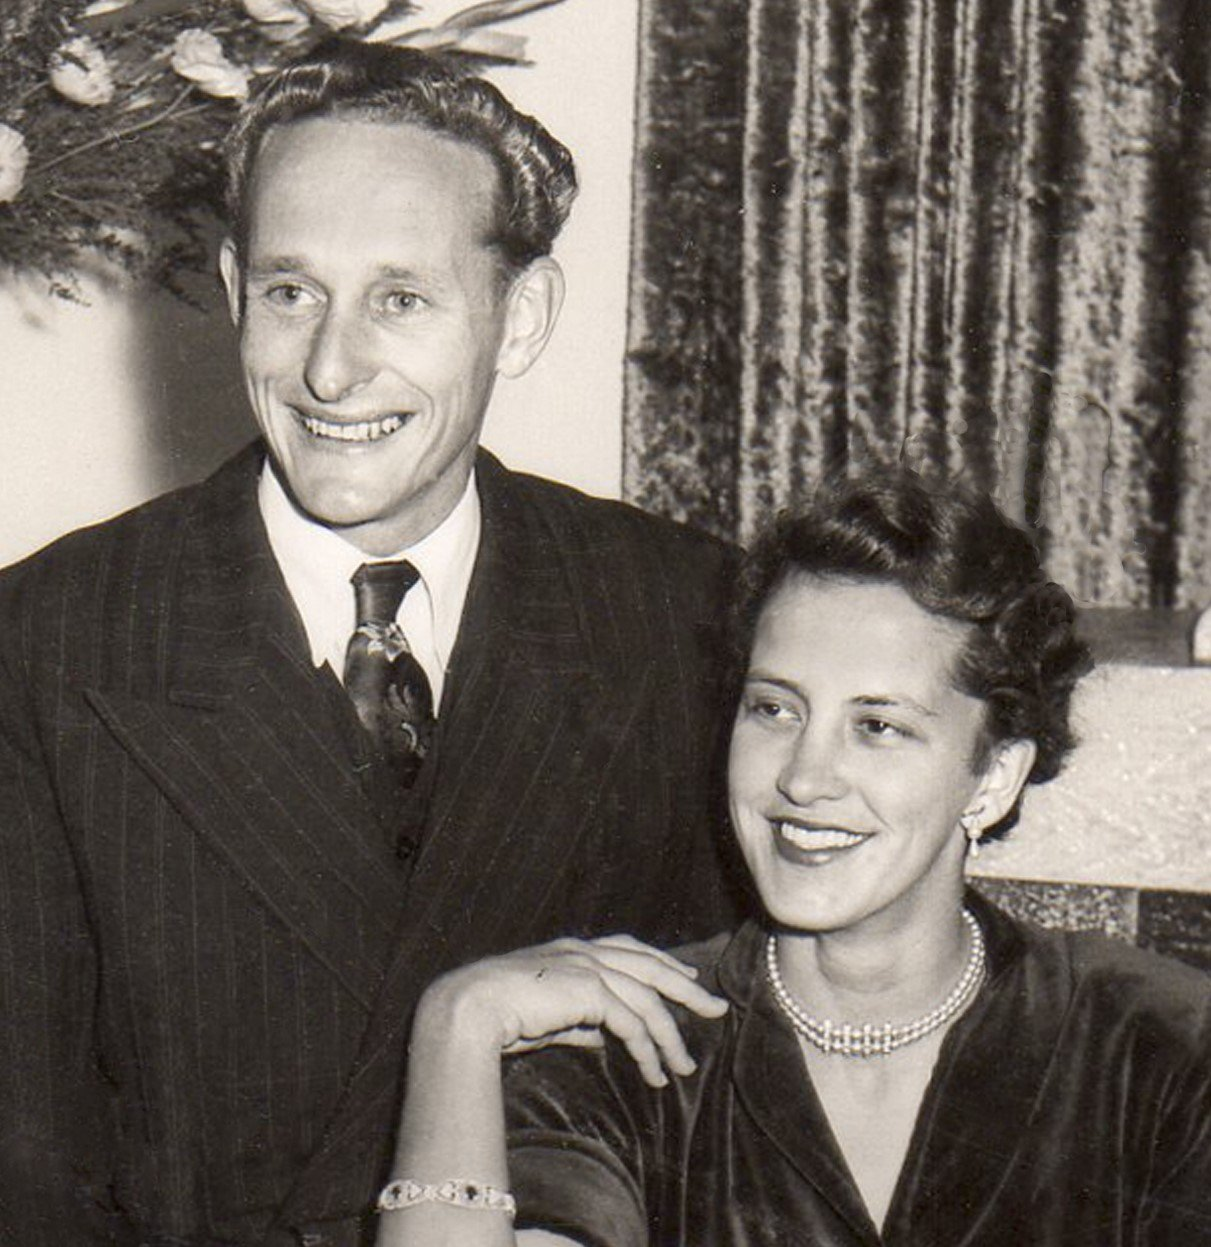 A young Gordon with his wife Shirley.